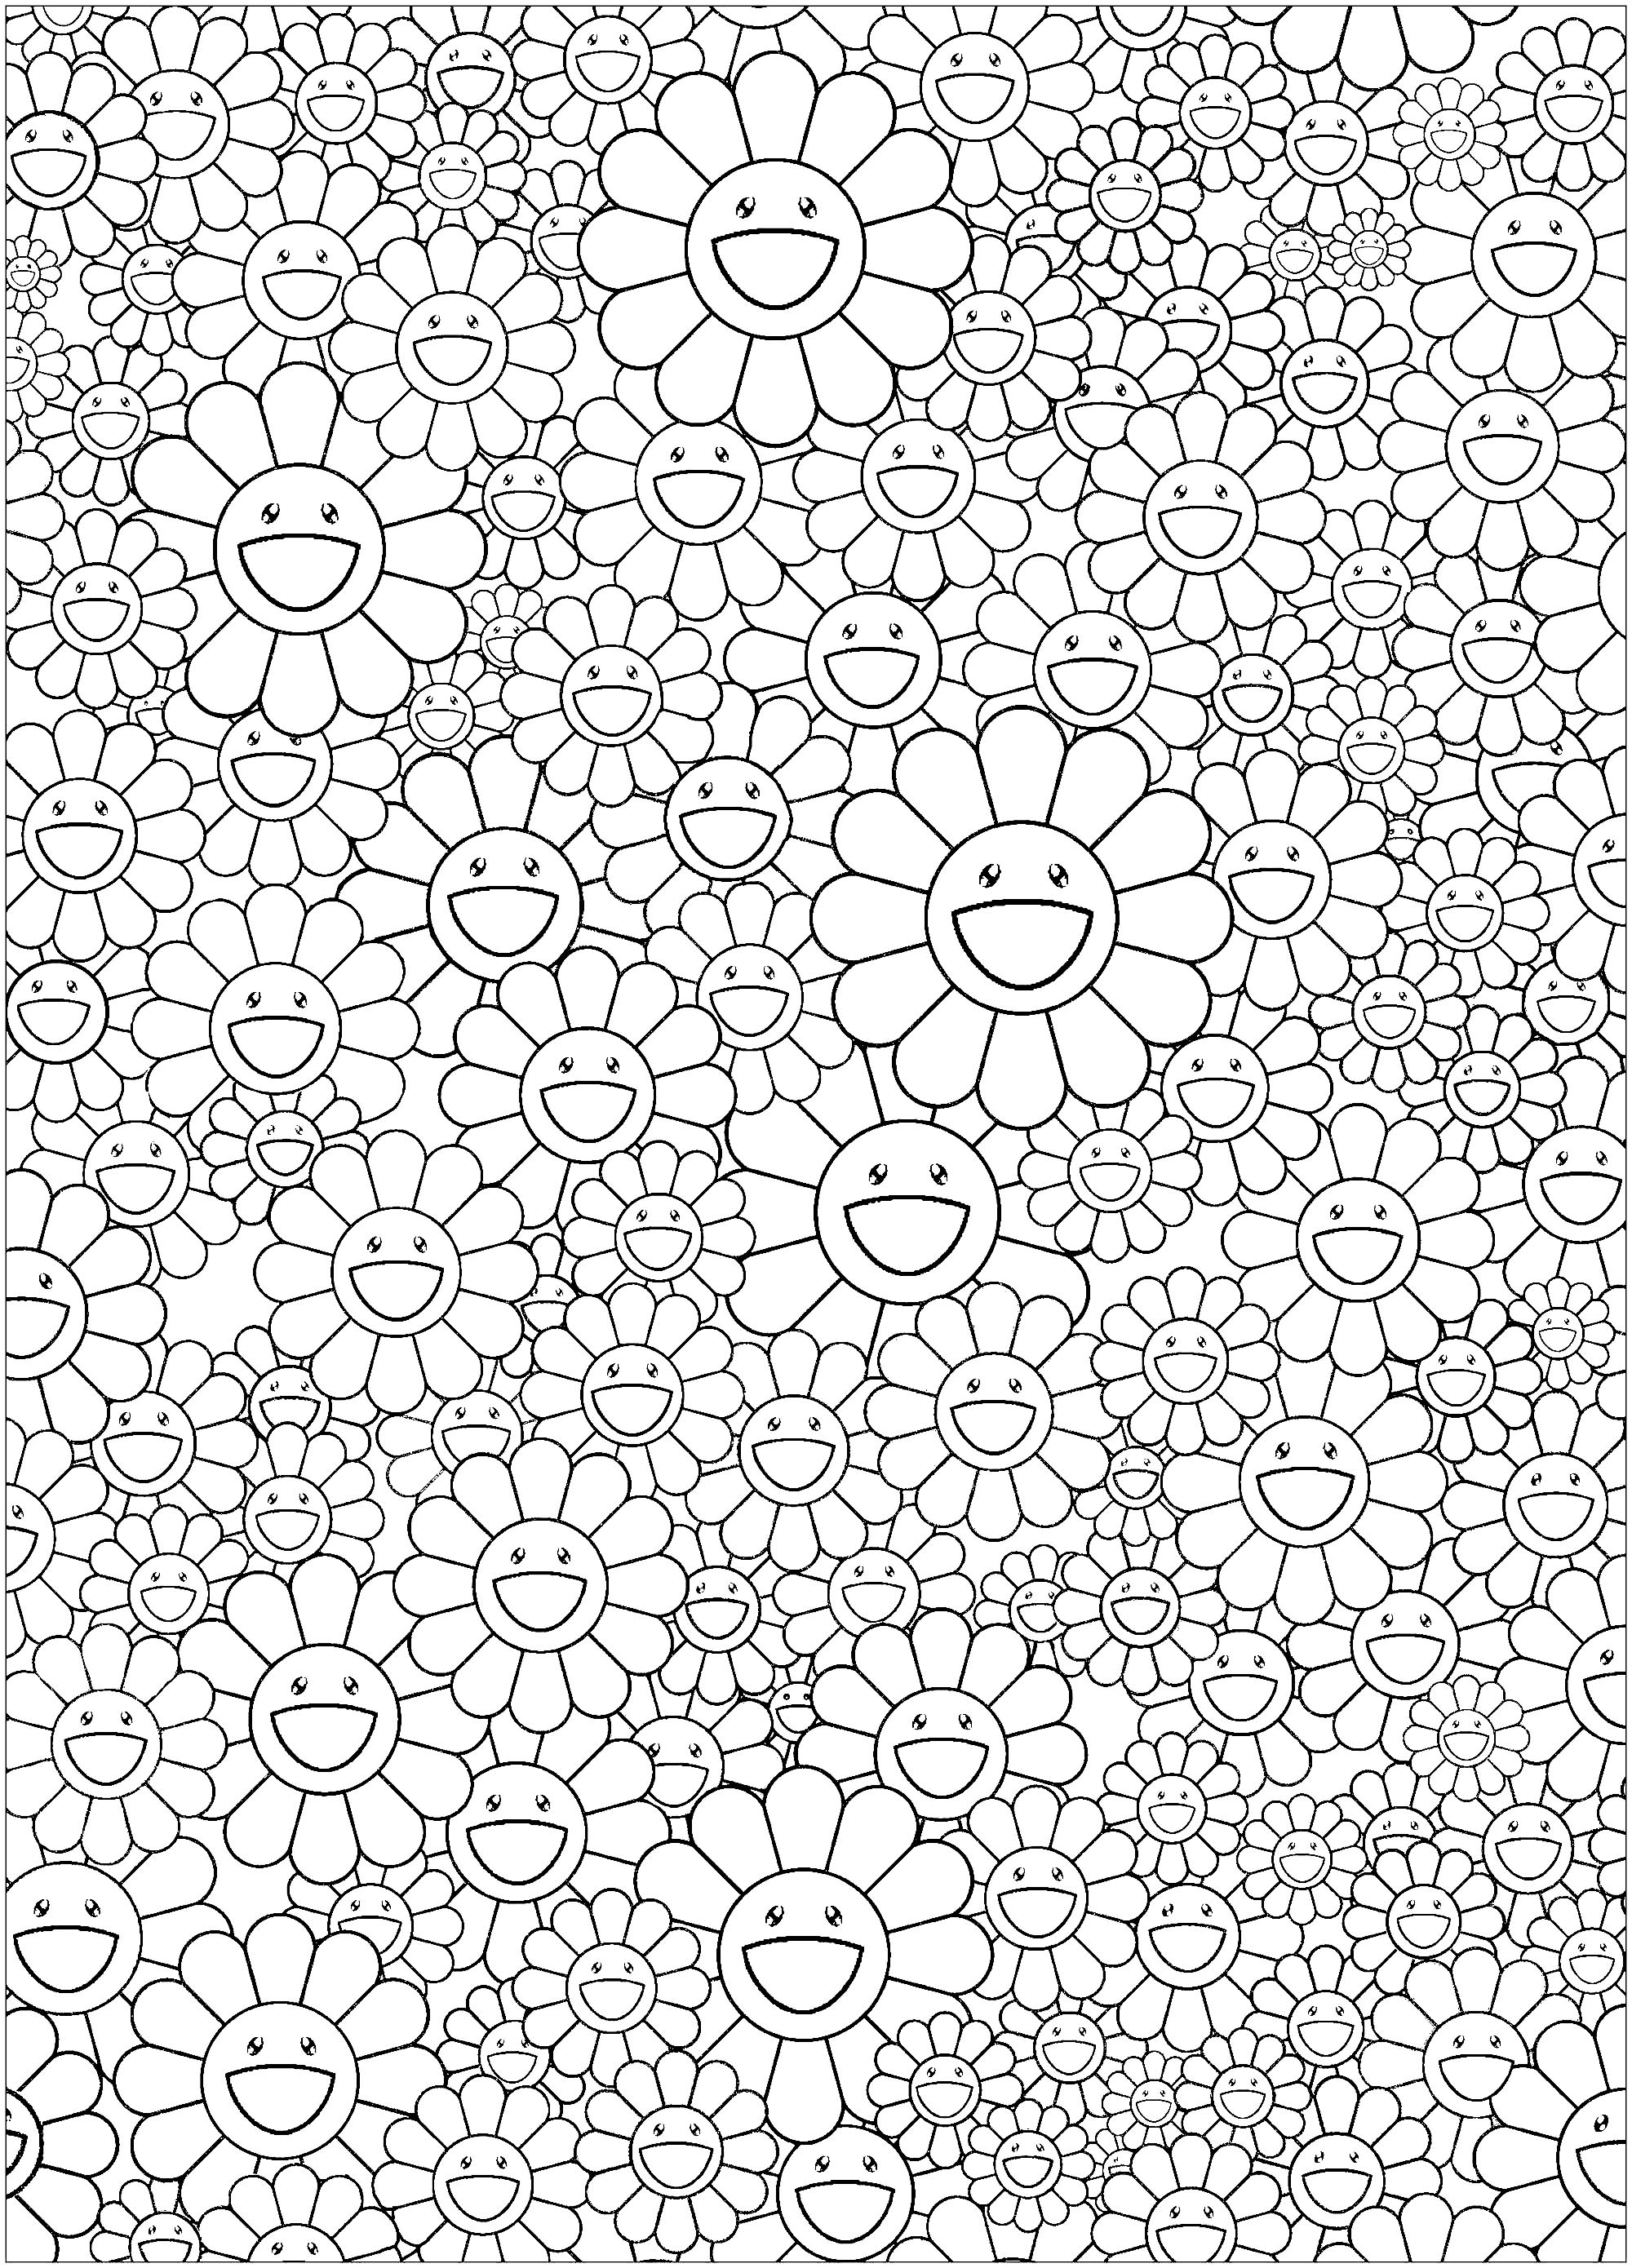 Iarxgq T as well Coloriage Takashi Murakami Fleurs Superflat as well Thanksgiving Leaves Coloring Pages further Fun Printable Games For Adults Best Images Of Printable Games For Adults Fun Printable Games Fun Printable Games For Kids X also Ecc C D F A Cddf. on fun coloring sheets for adults